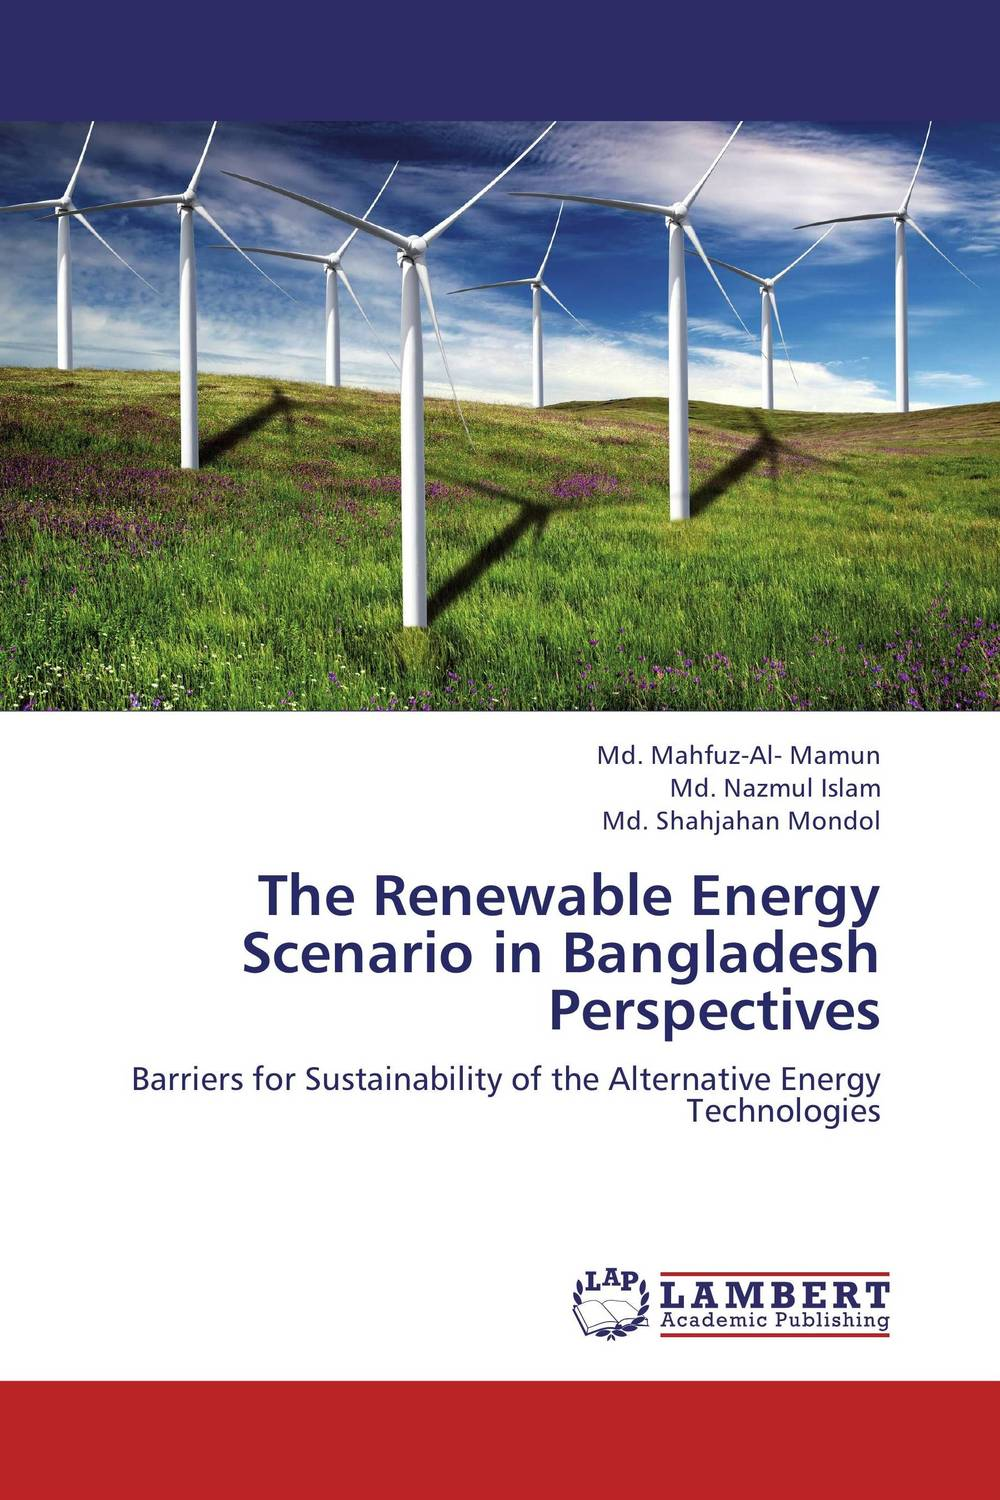 The Renewable Energy Scenario in Bangladesh Perspectives oris 674 7599 71 54 rs